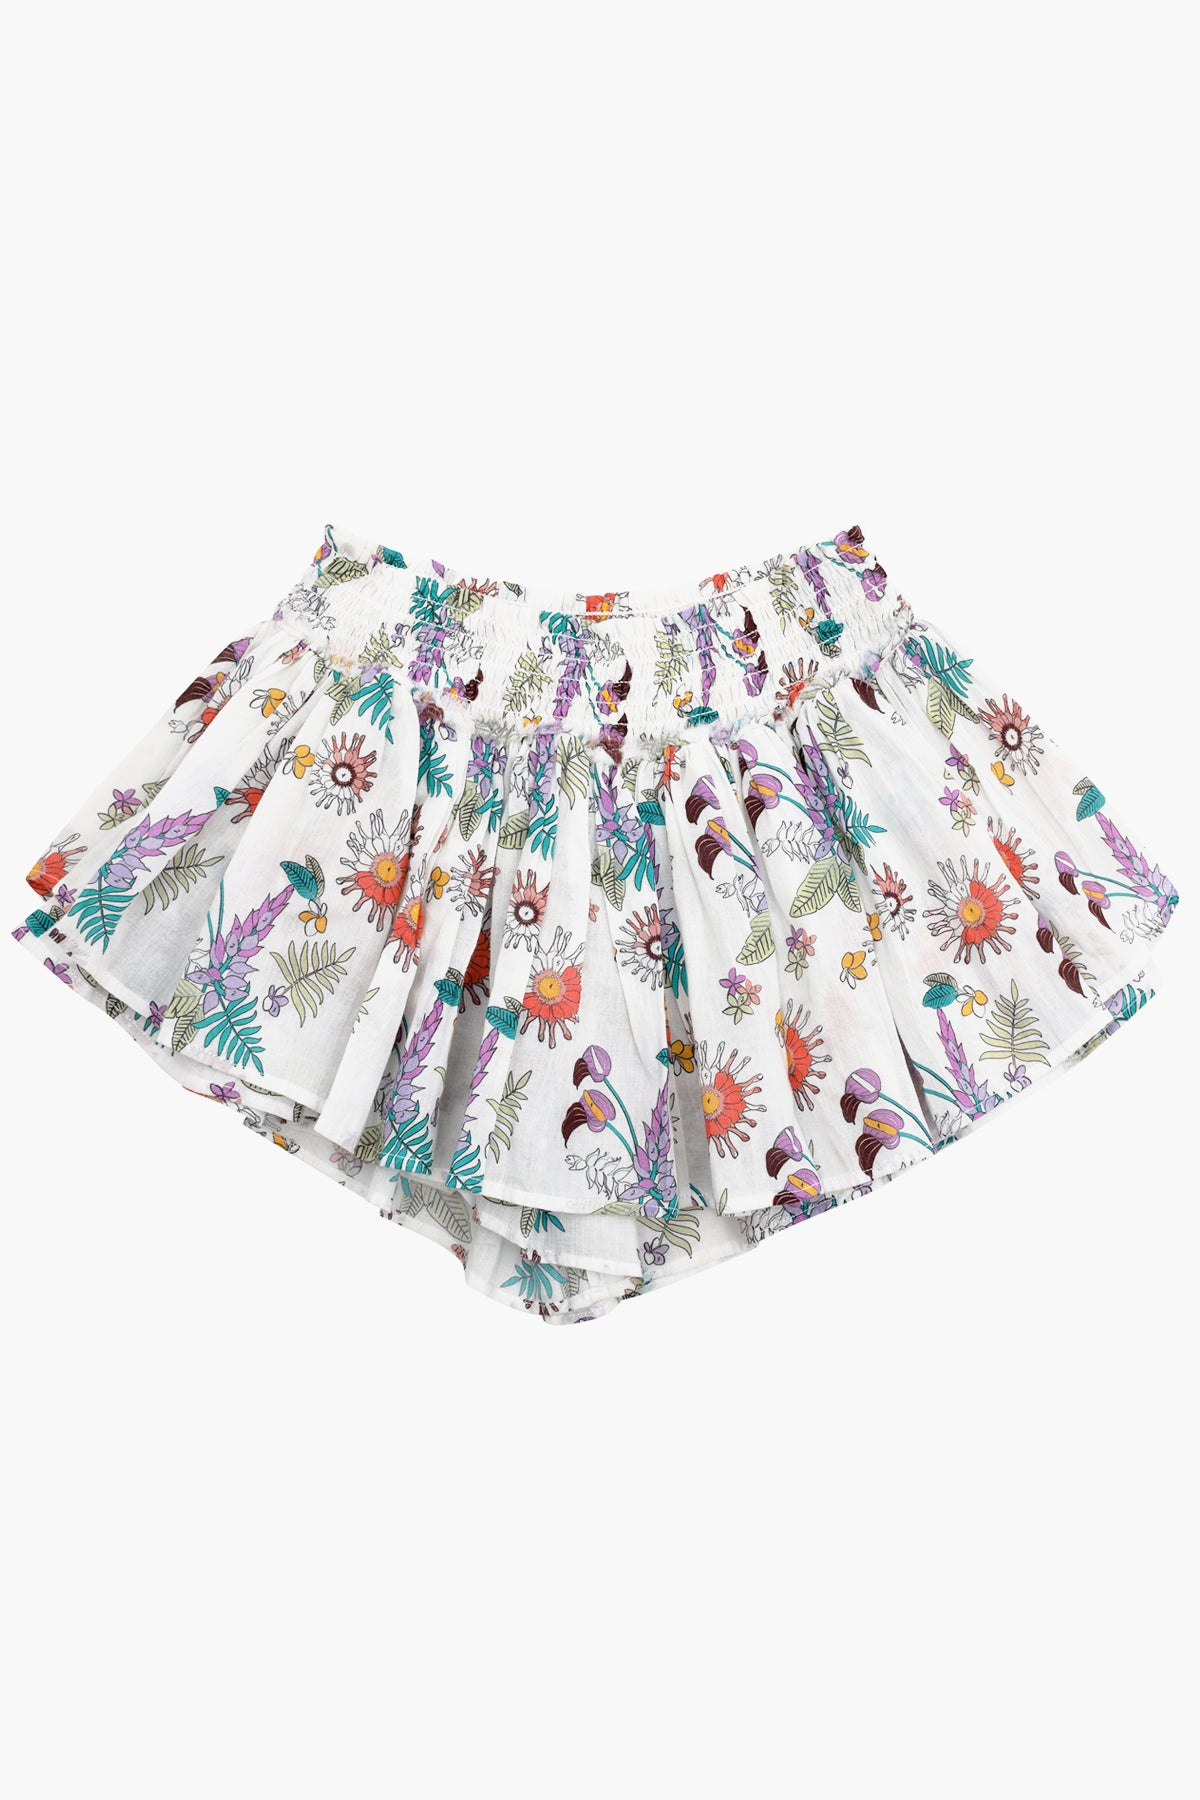 Velveteen Eloise Skort - Paint By Numbers